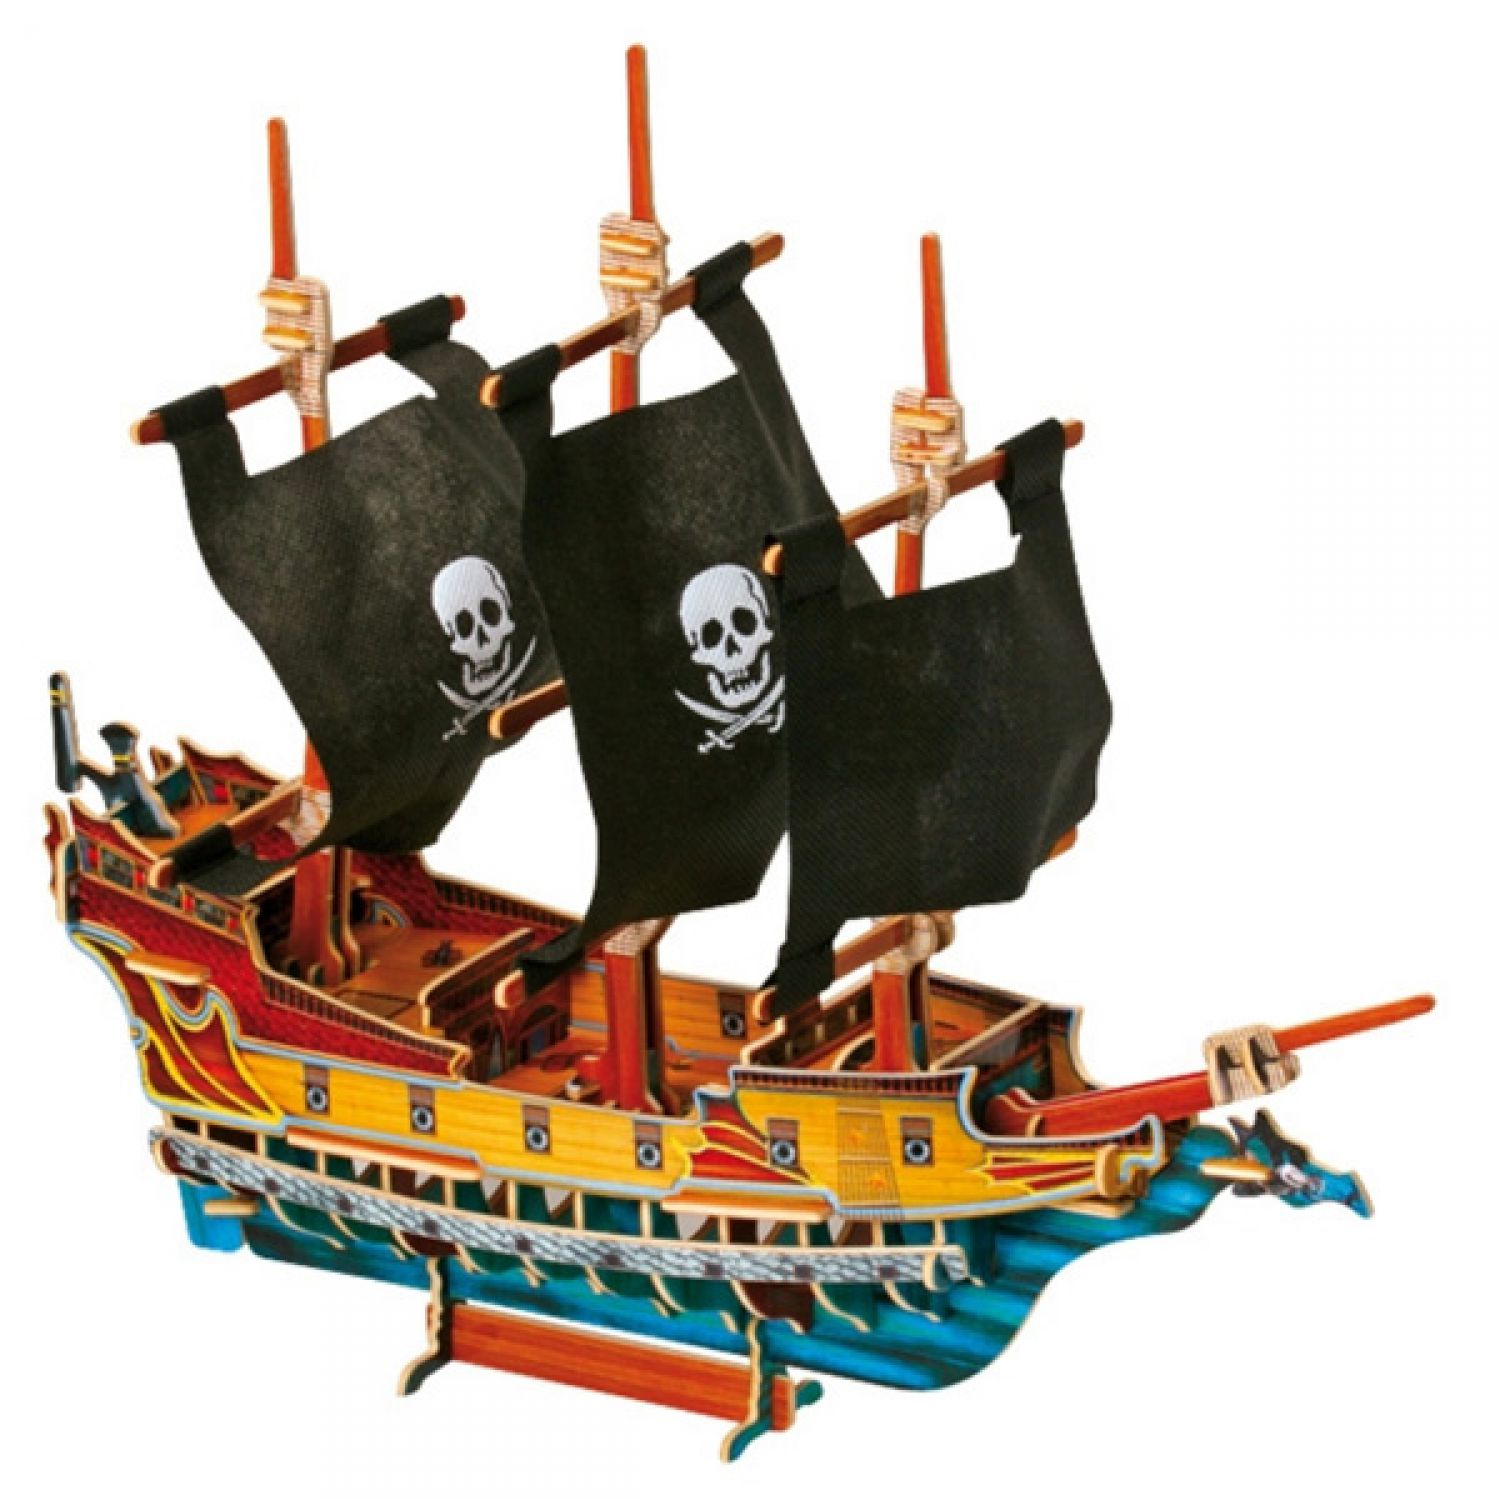 3d bateau de pirates bateau jouet maquette de bateau. Black Bedroom Furniture Sets. Home Design Ideas